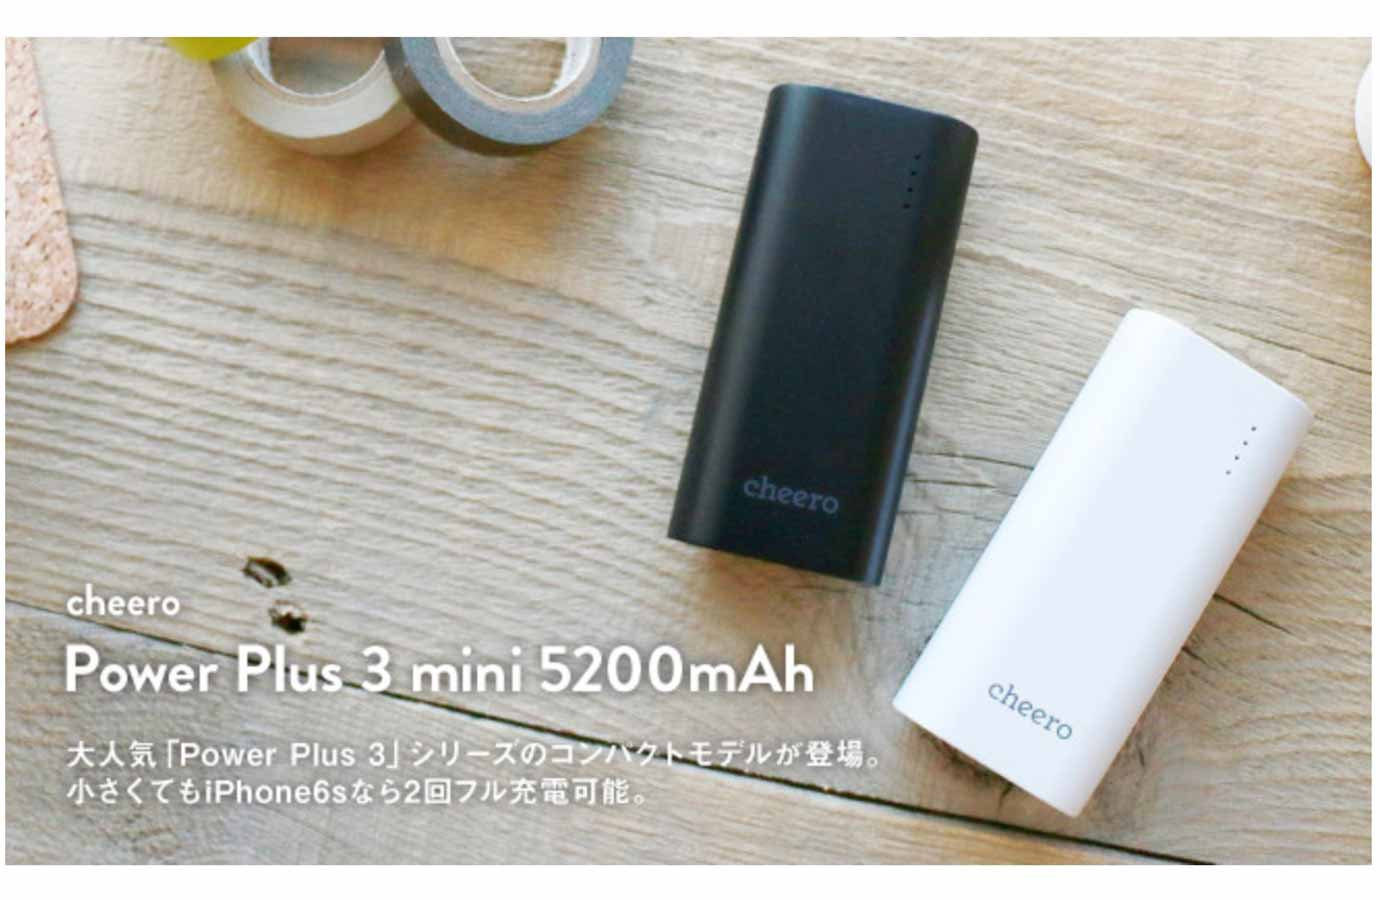 cheero、「cheero Power Plus 3 mini 5200mAh」の販売を開始